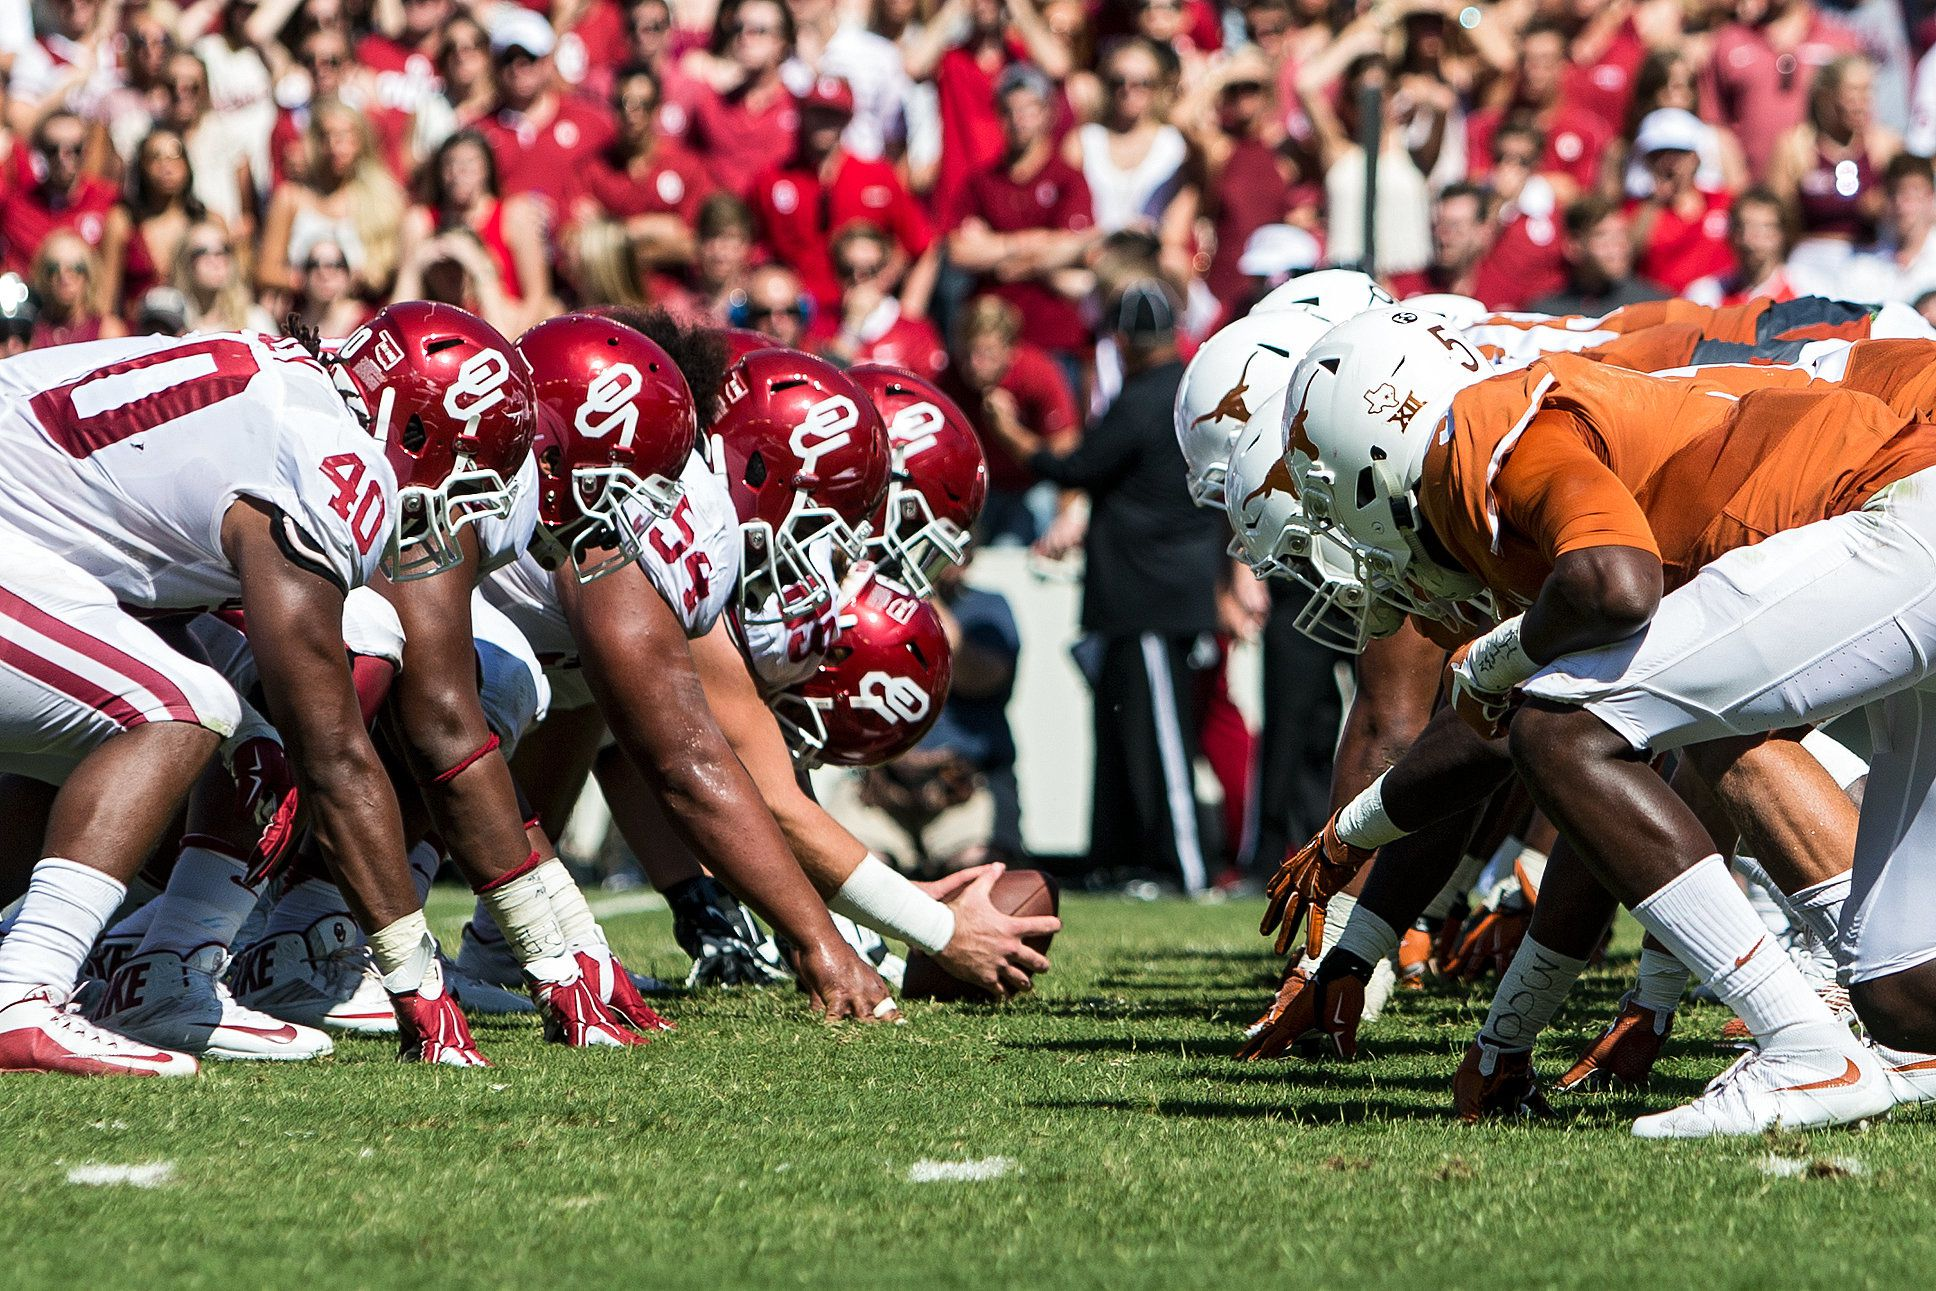 Players from both Oklahoma and Texas line up on either side of the football.